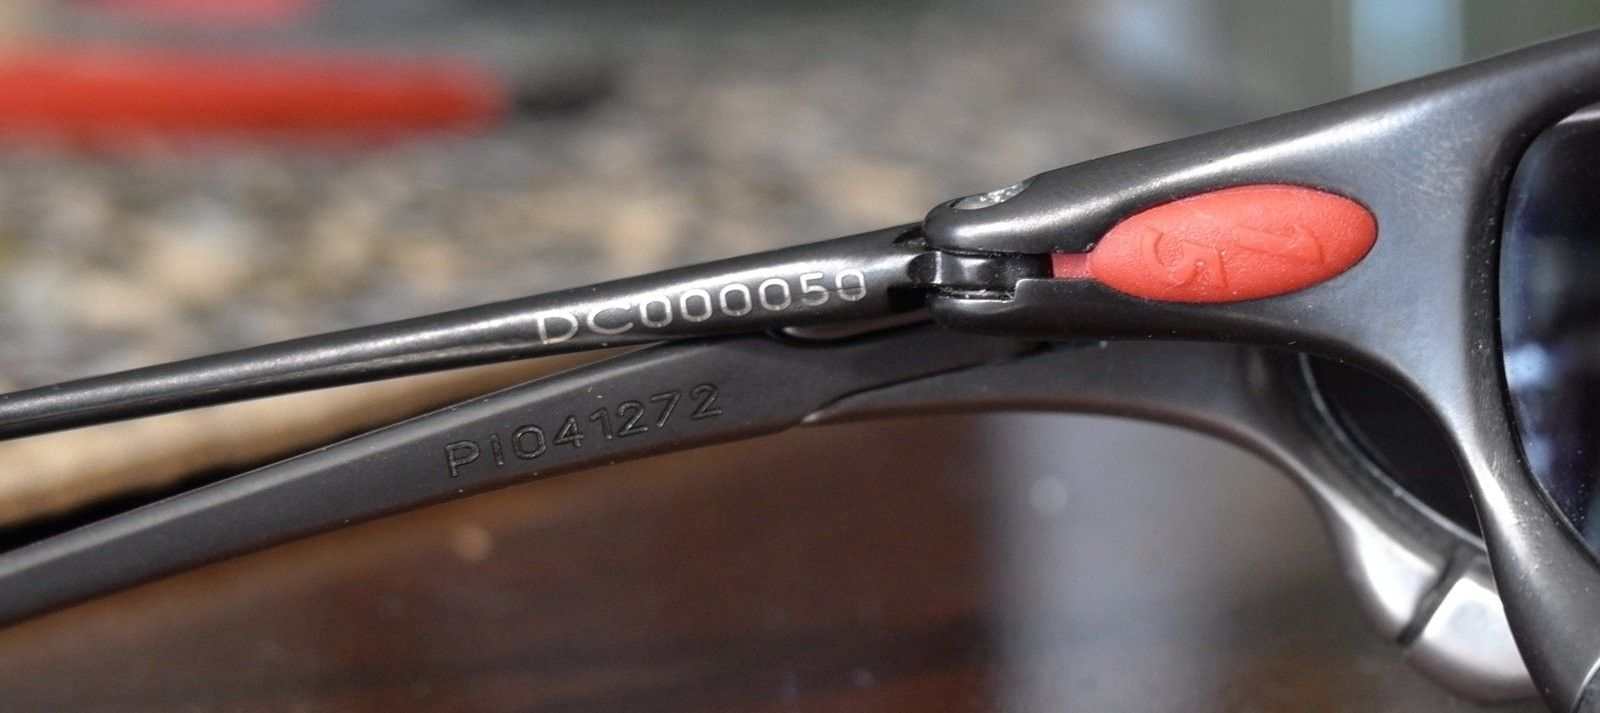 New Ducati with Wrong Serial Number? - L1130891.JPG